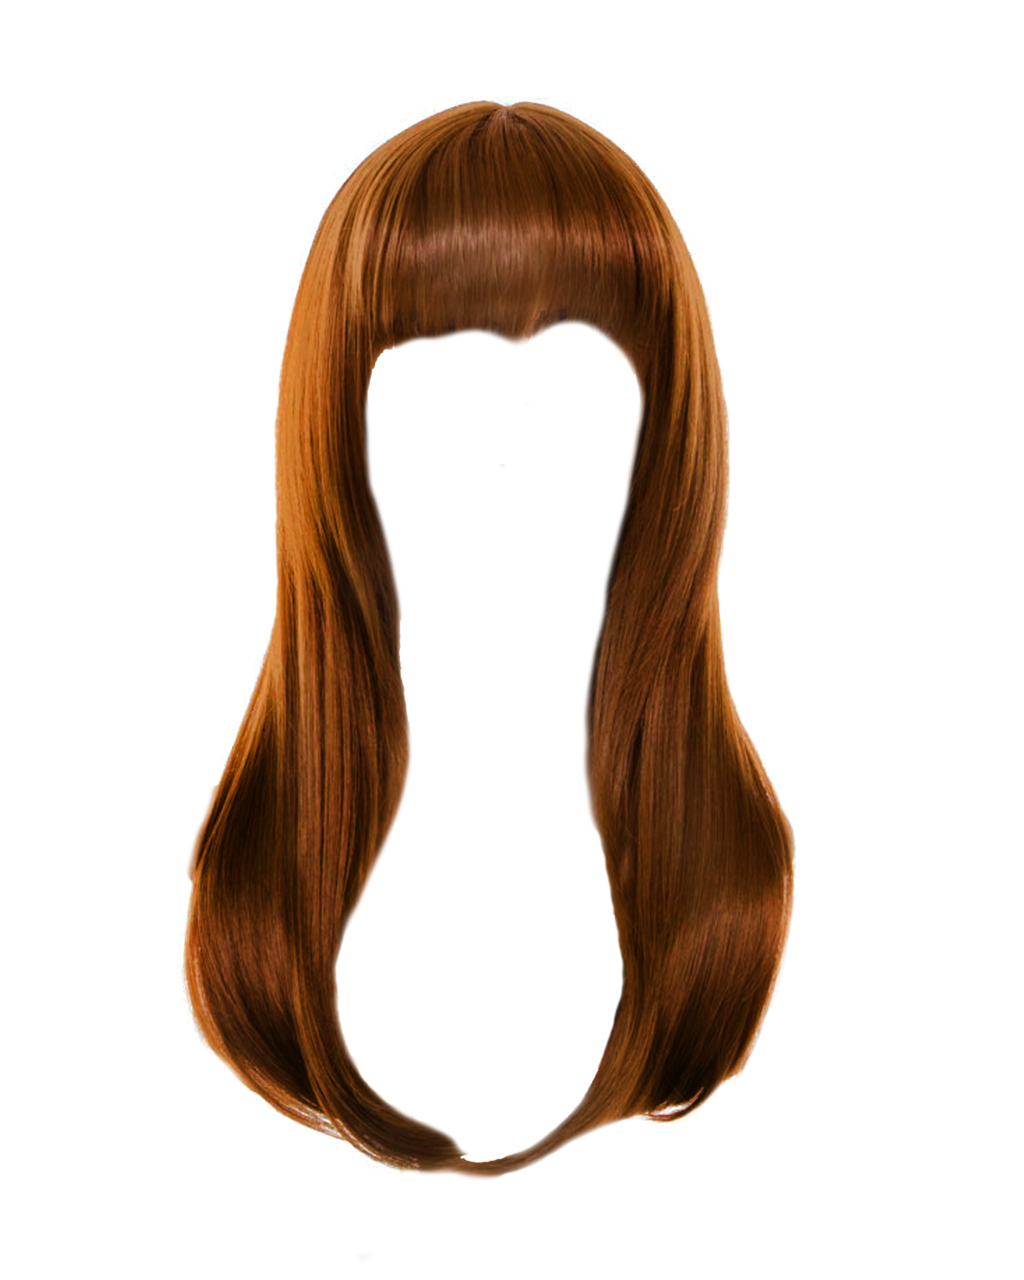 Women Hair Png Image Womens Hairstyles Photoshop Hair Hair Png